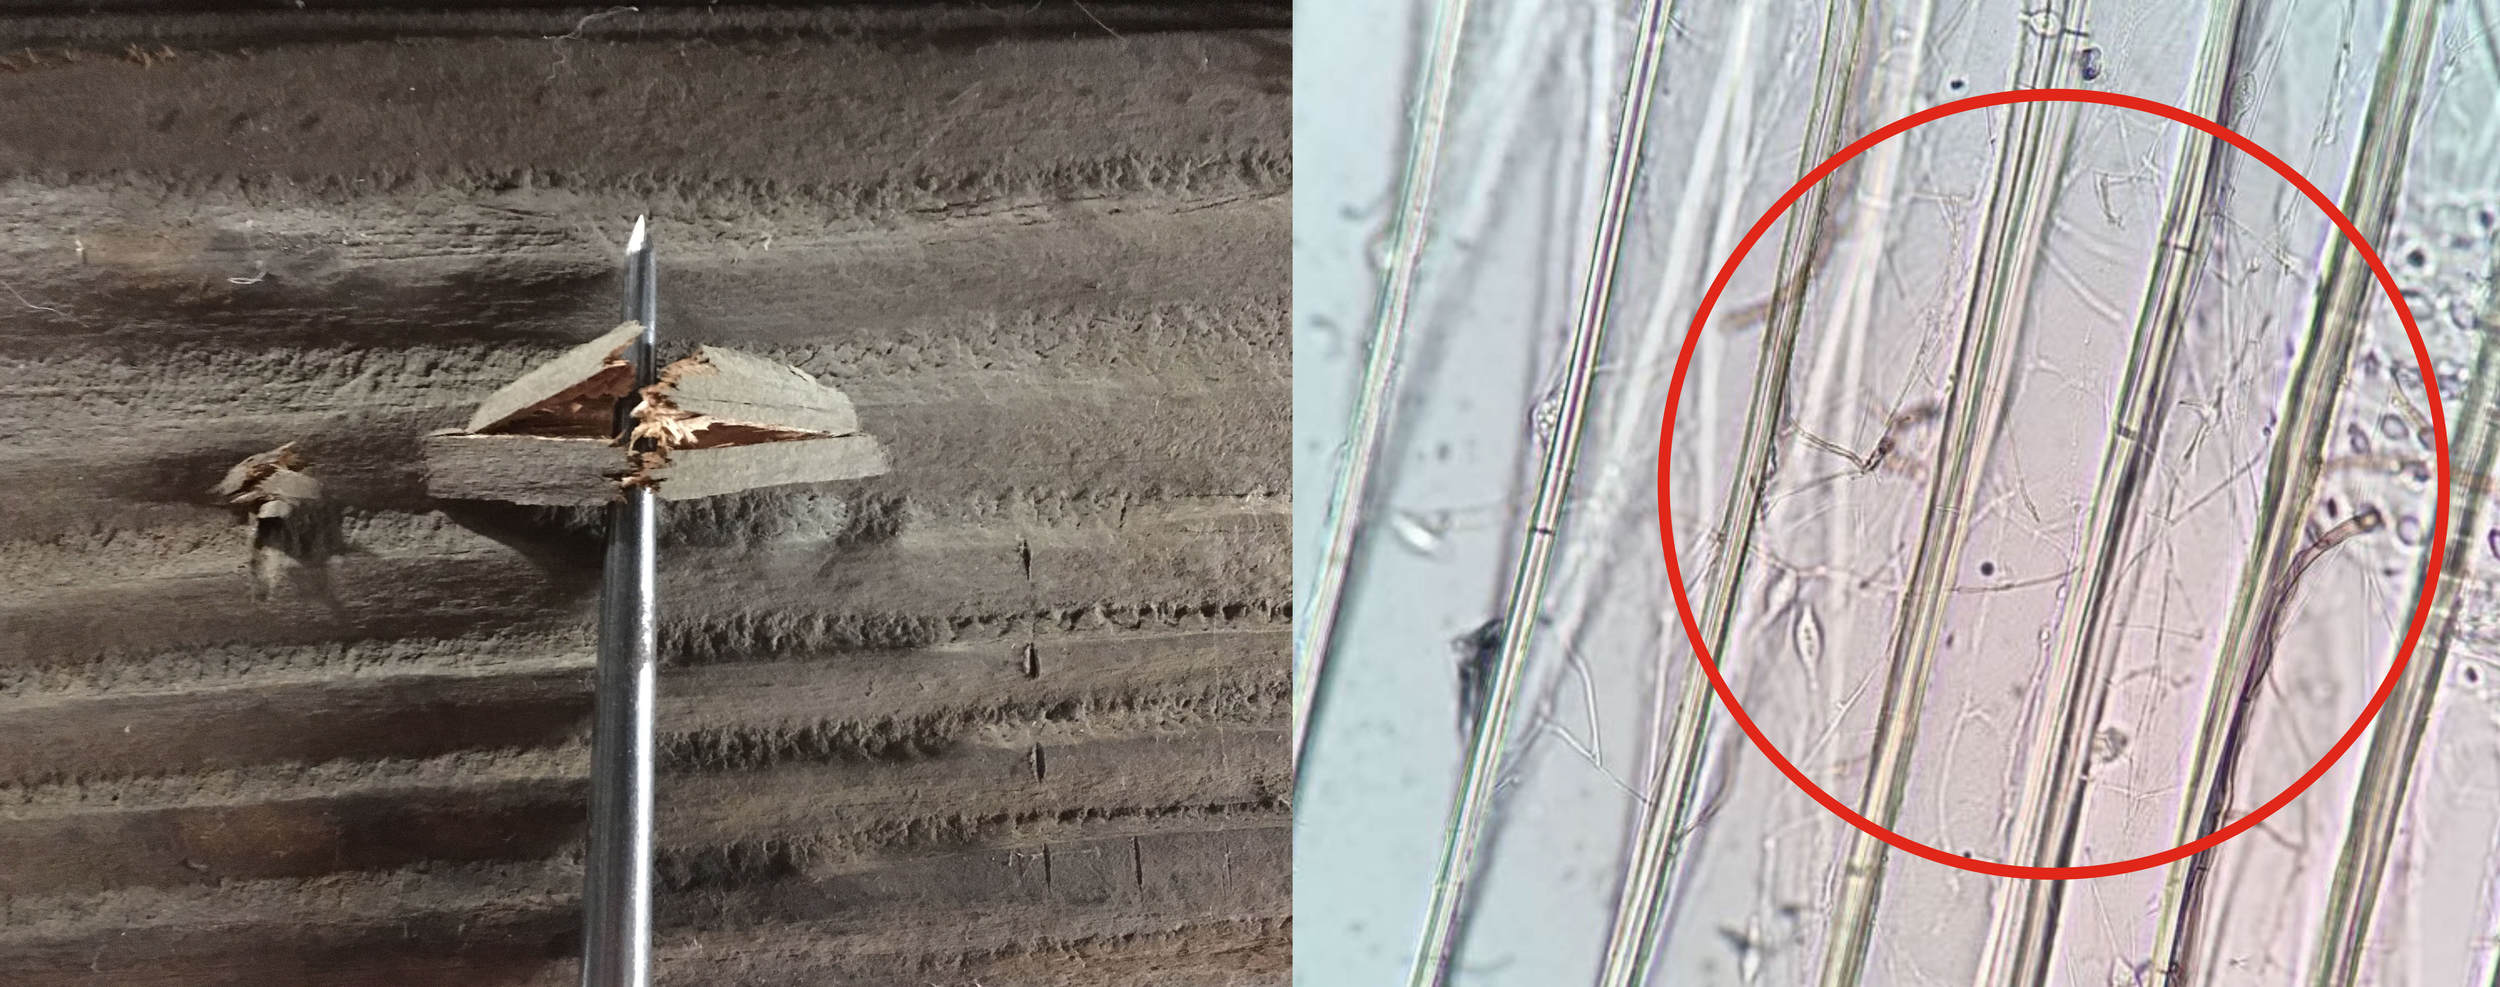 Photo 2 - The image on the left shows a short splinter with a brash failure resulting from a pick test. The image on the right is a photomicrograph illustrating a network of root-like wood decay hyphae in several wood cells. This verified the presence of incipient wood decay in the wood element shown on the left.